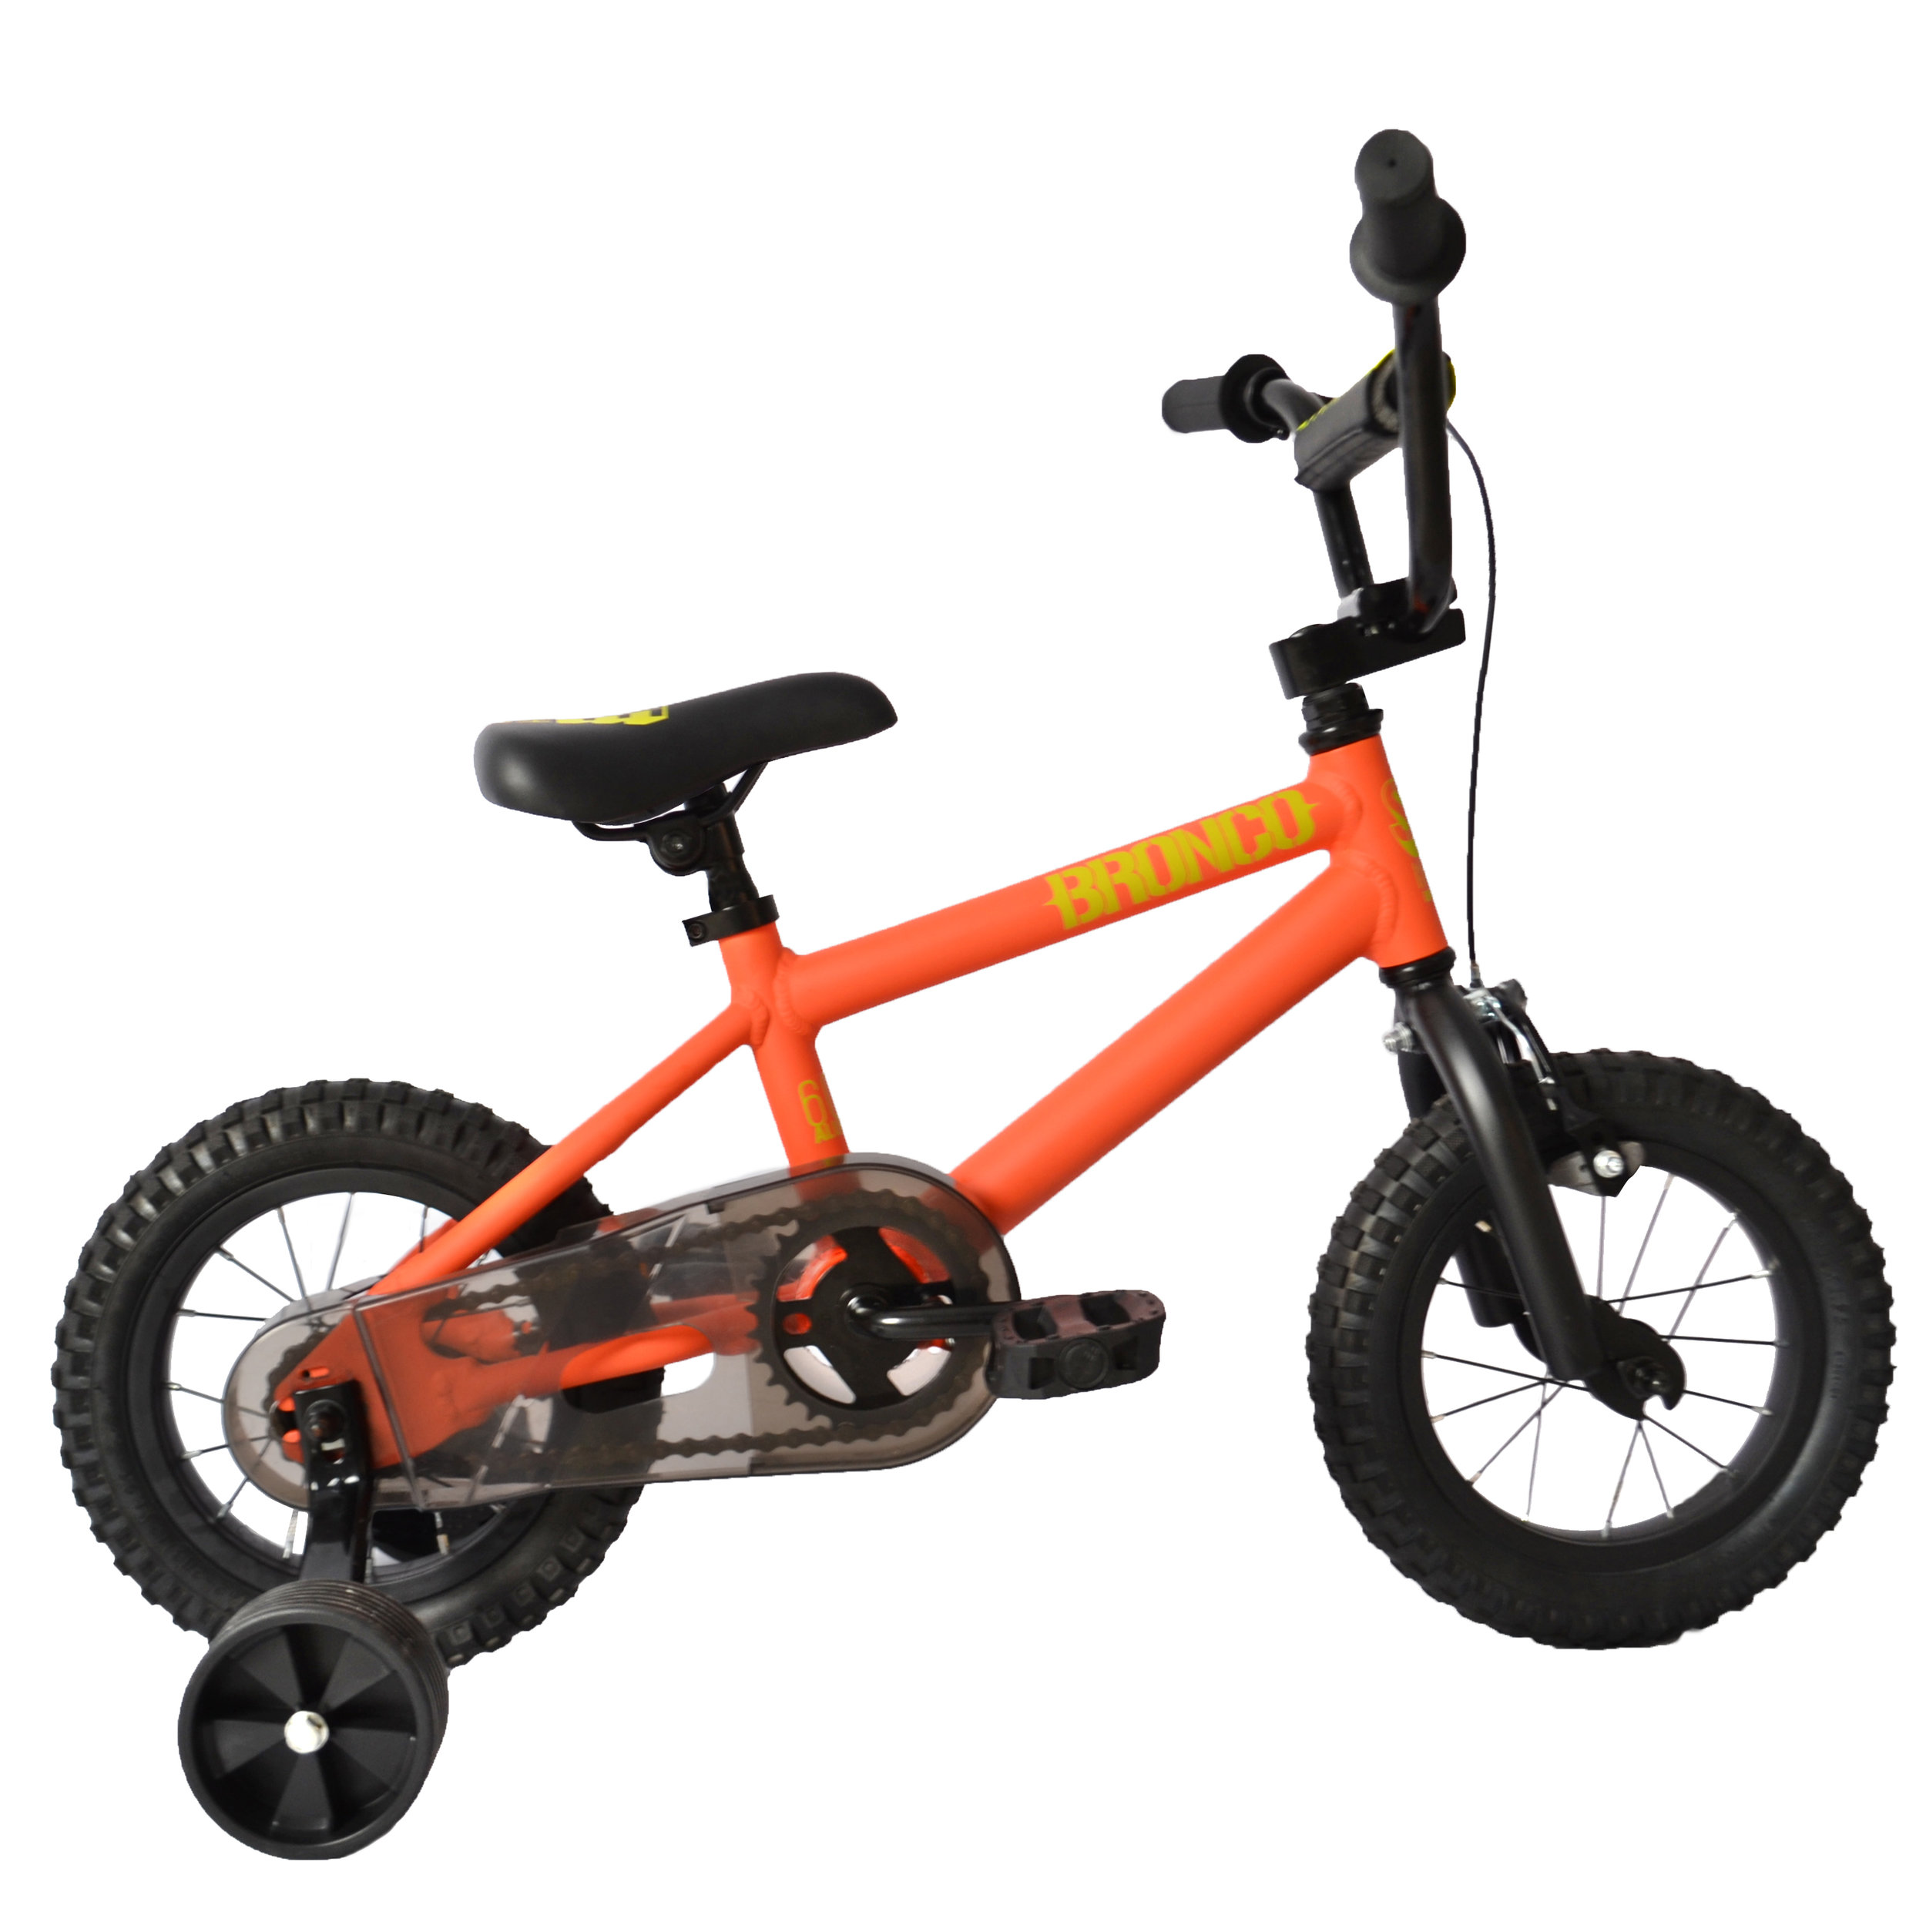 """SE Bronco 12""""   This is the smallest SE bike ever! The 6061 aluminum Bronco 12 comes equipped with training wheels & a coaster brake for the enthusiastic little kid just learning to ride. You're never too young to have fun a bike."""